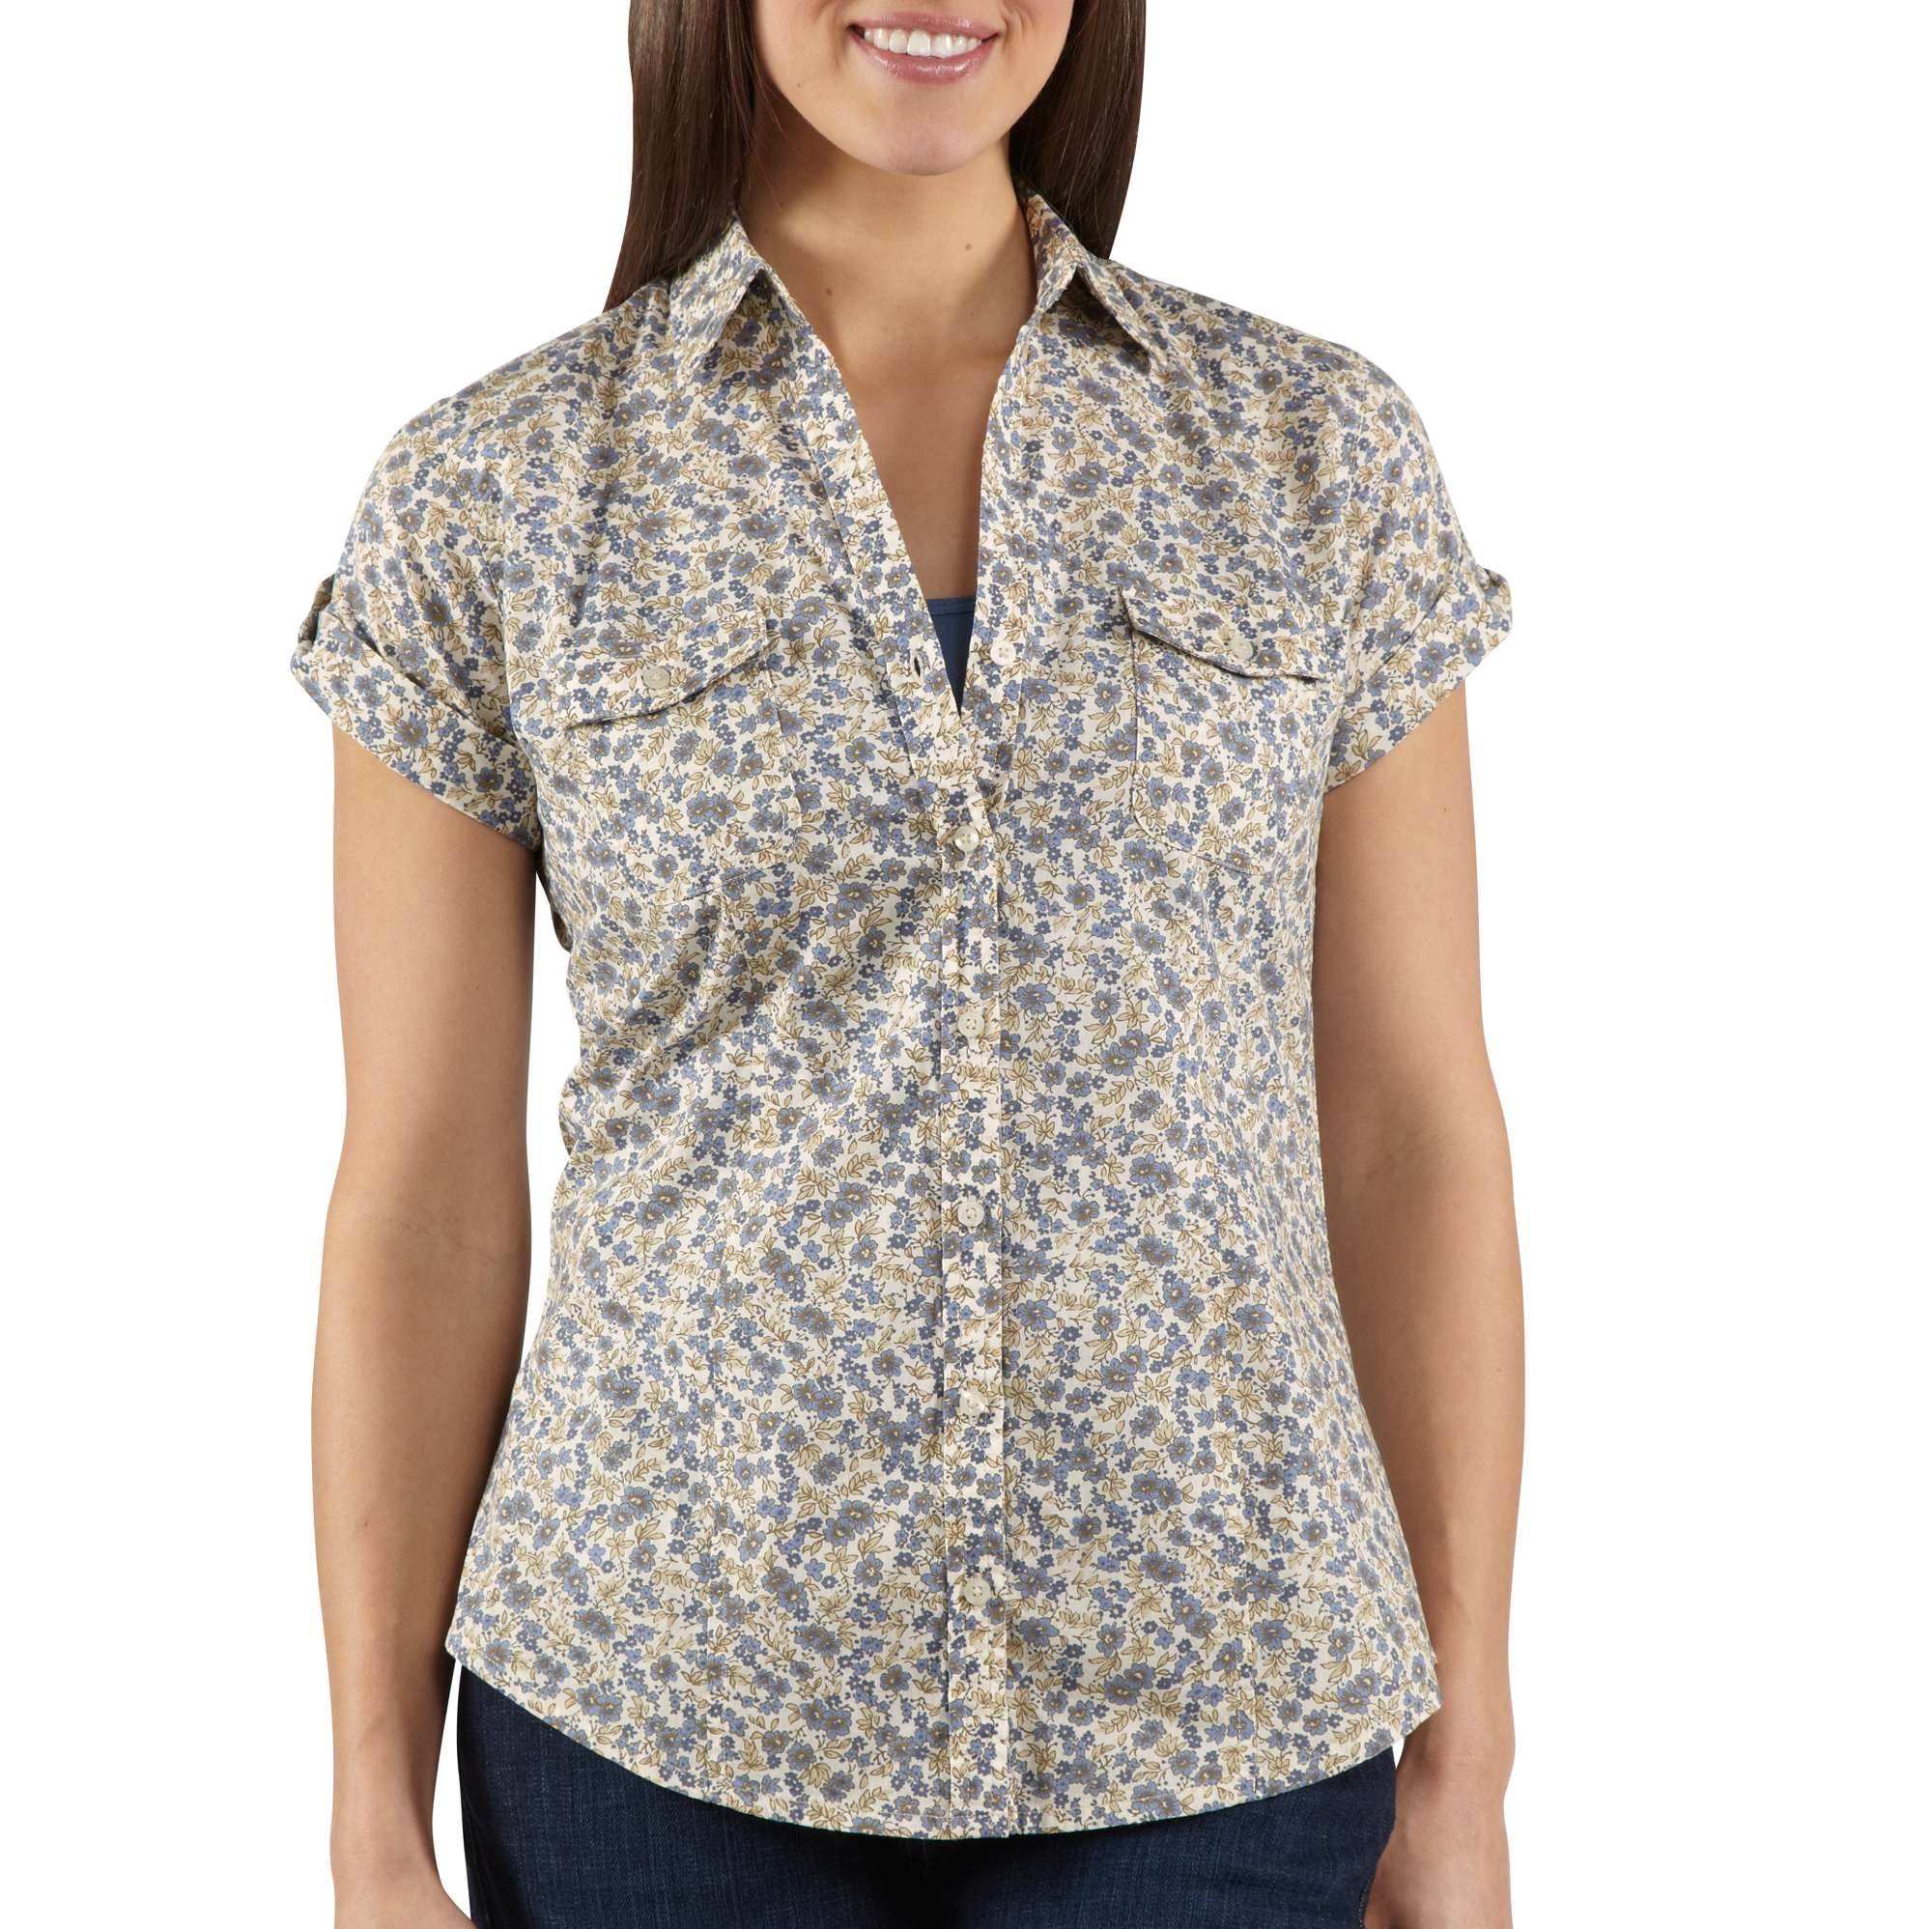 Carhartt womens short sleeve printed camp shirt ws036 ebay for Women s broadcloth shirts